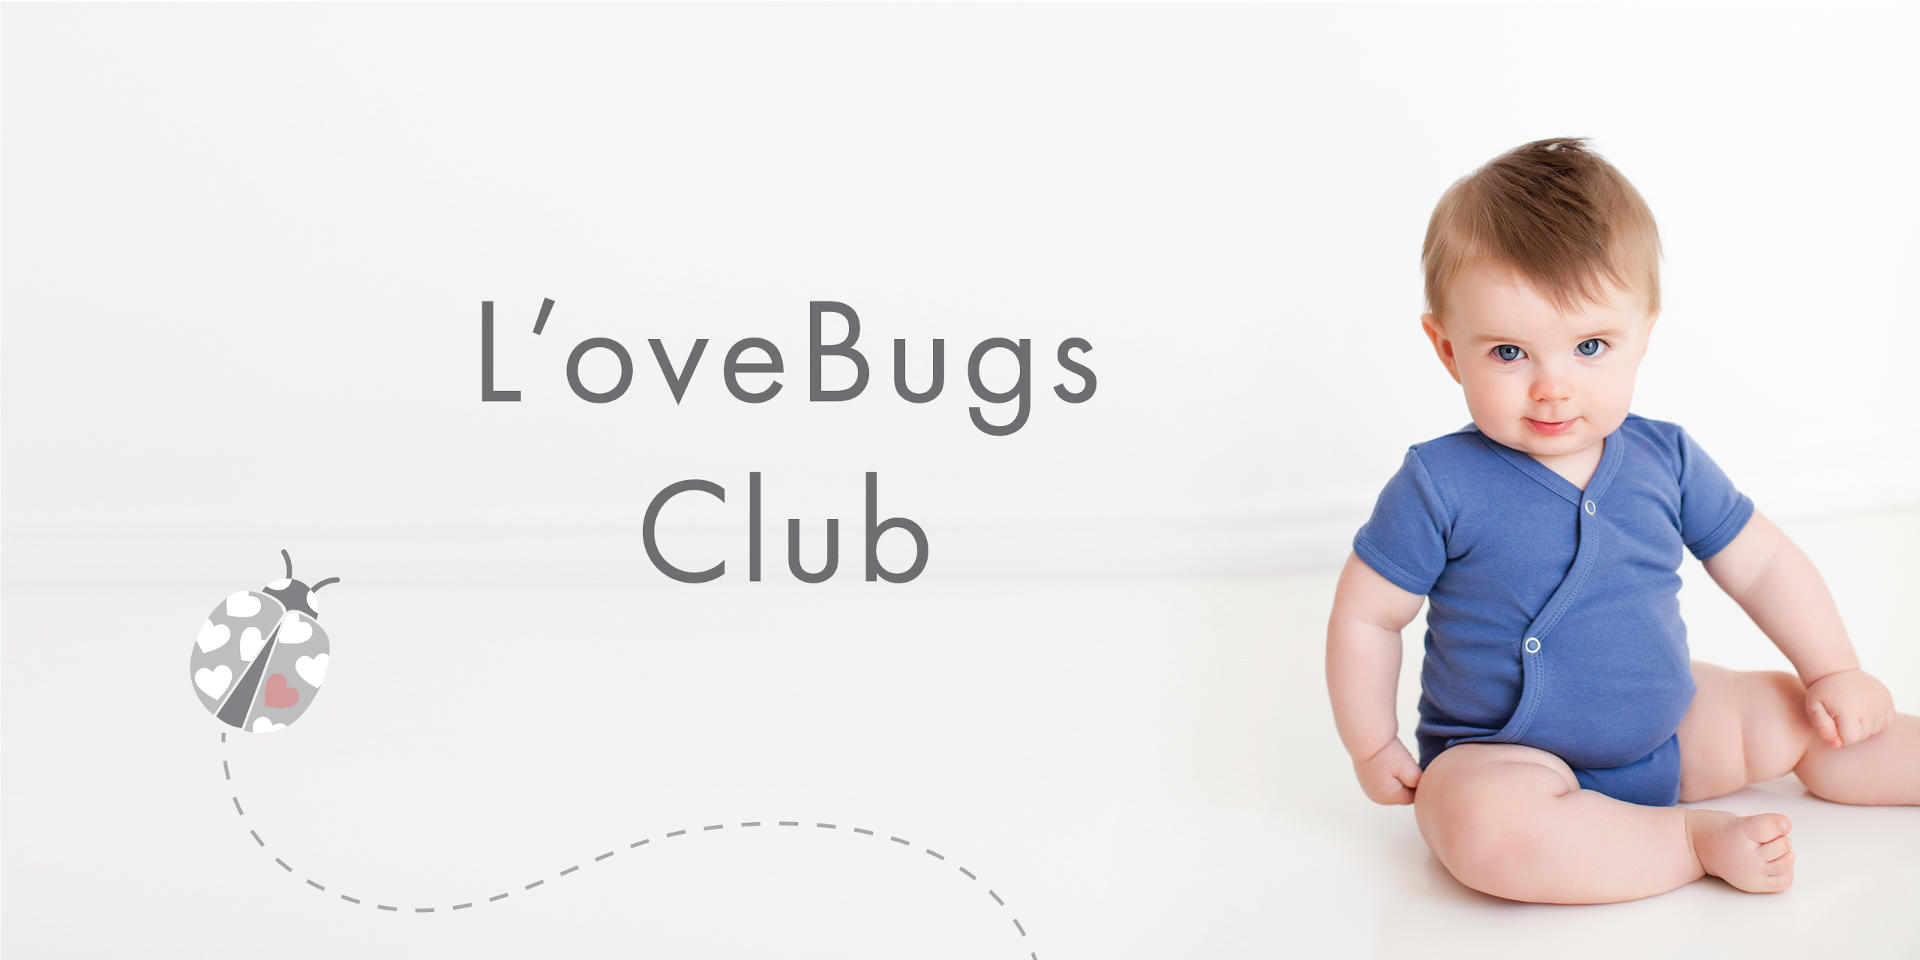 lovebugs-hero-faq.jpg